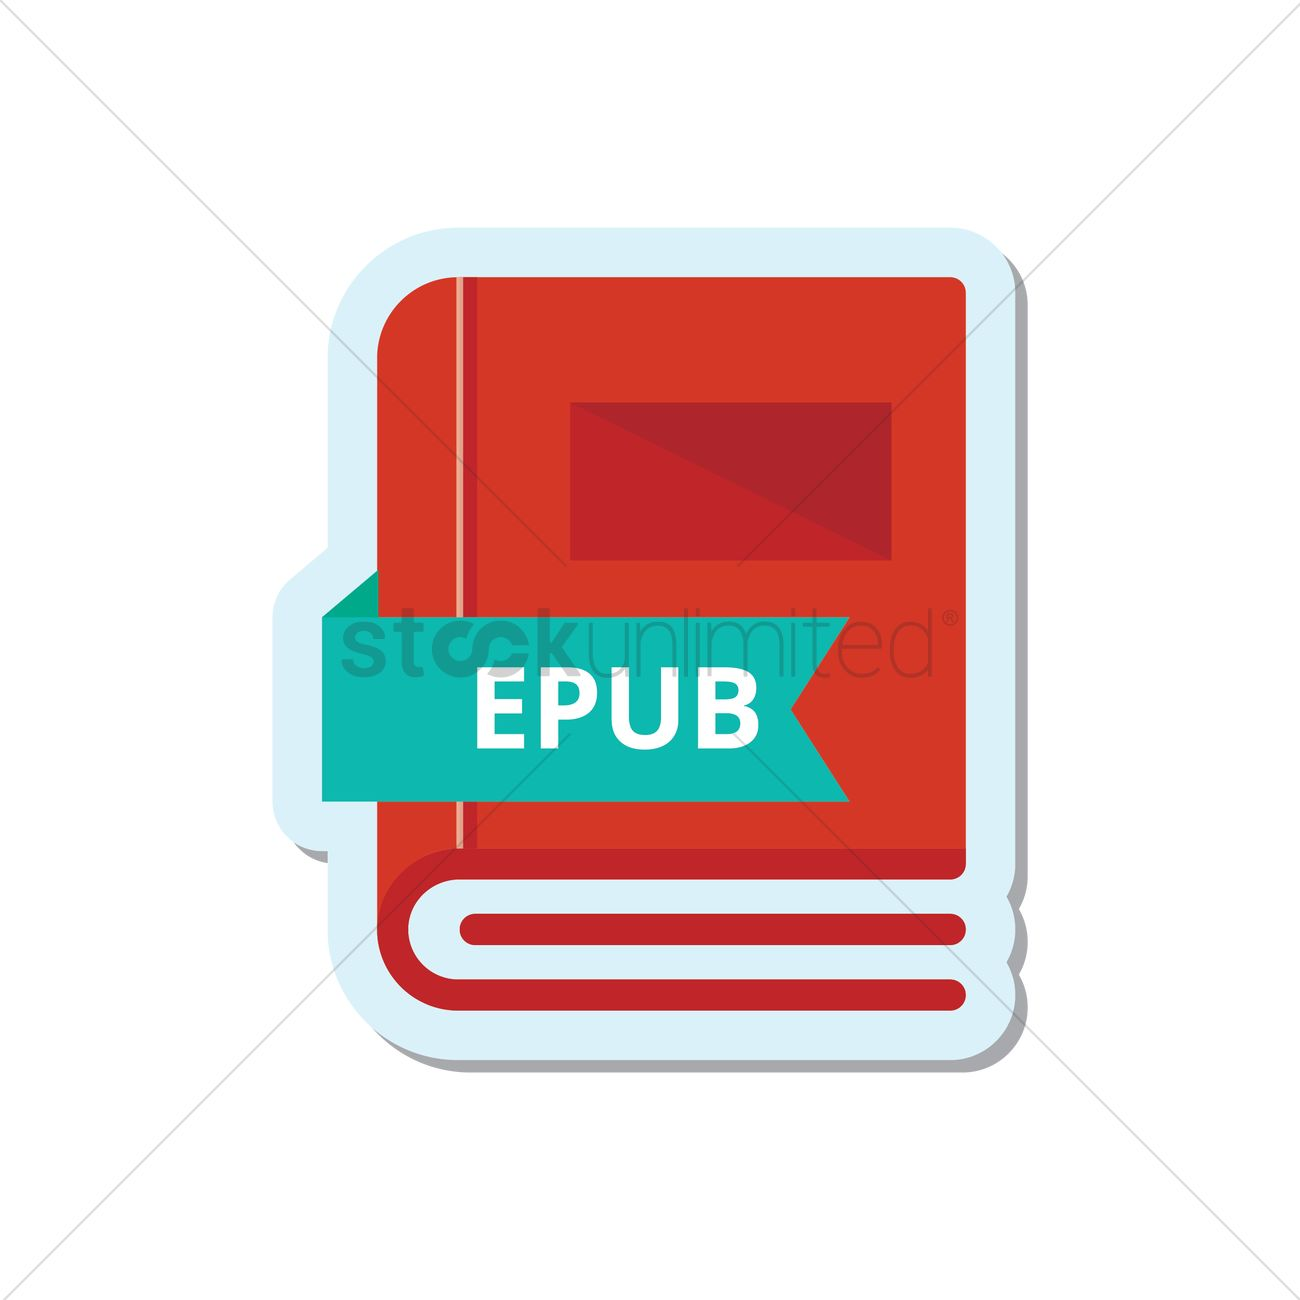 Book with epub format icon Vector Image - 1951977